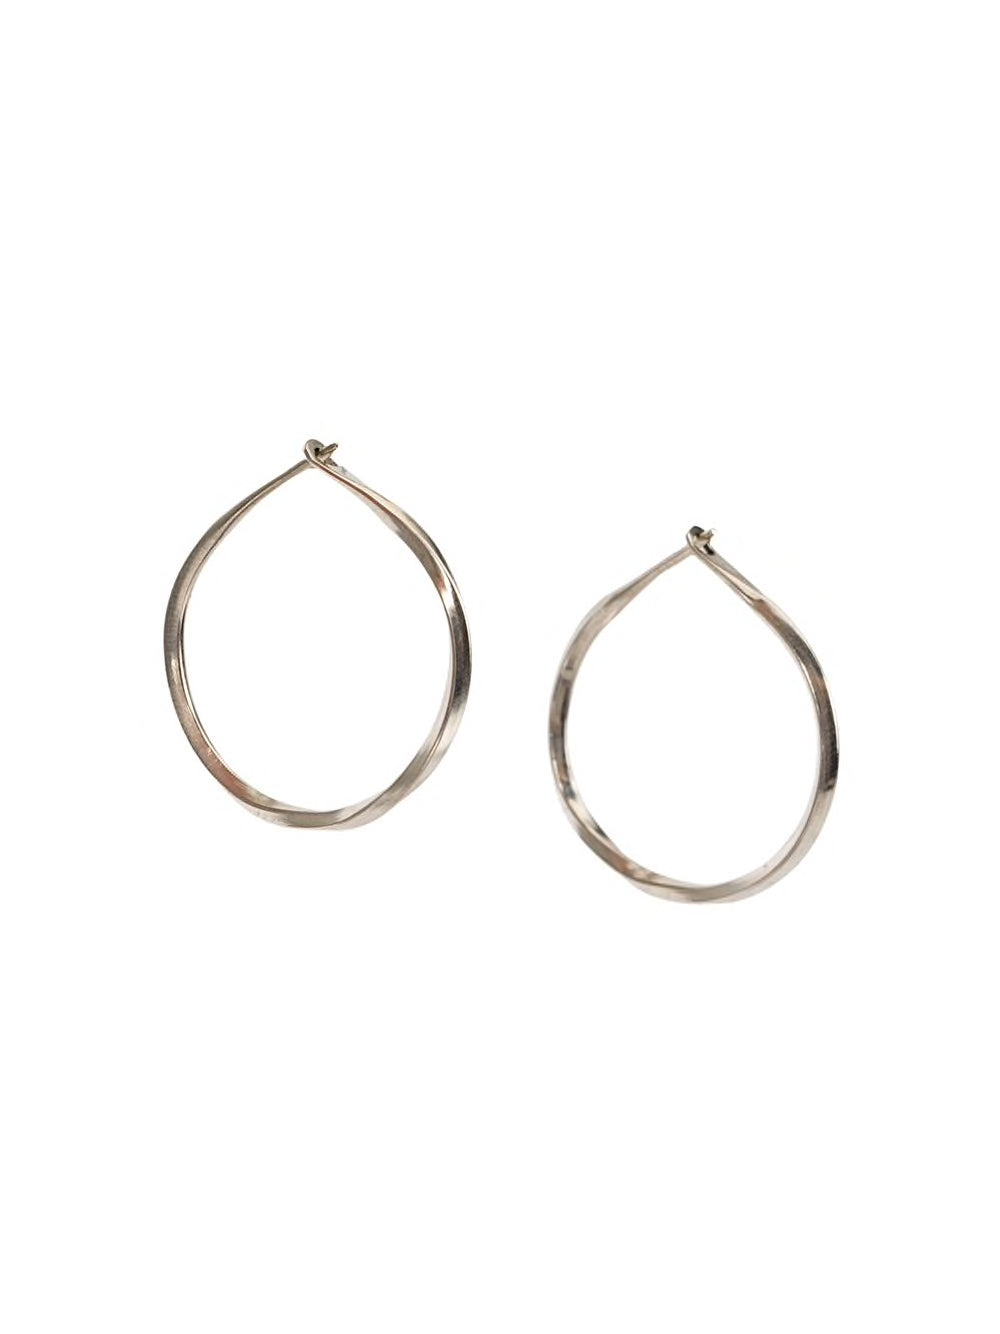 WERKSTATT MUNCHEN HOOP EARRINGS TWISTED M4515